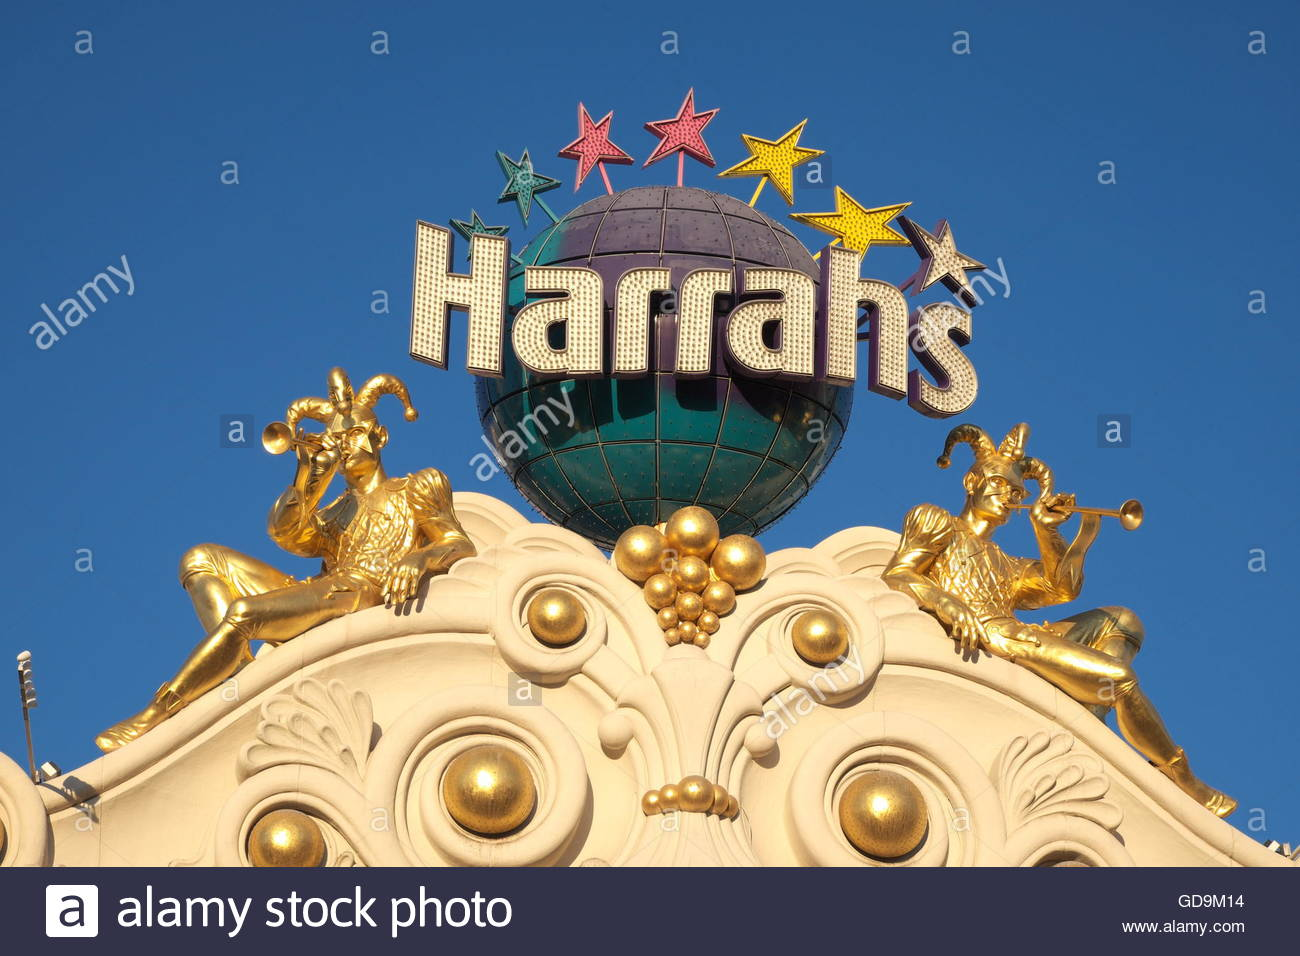 Harrahs casino stock symbol atlantic city resorts casino